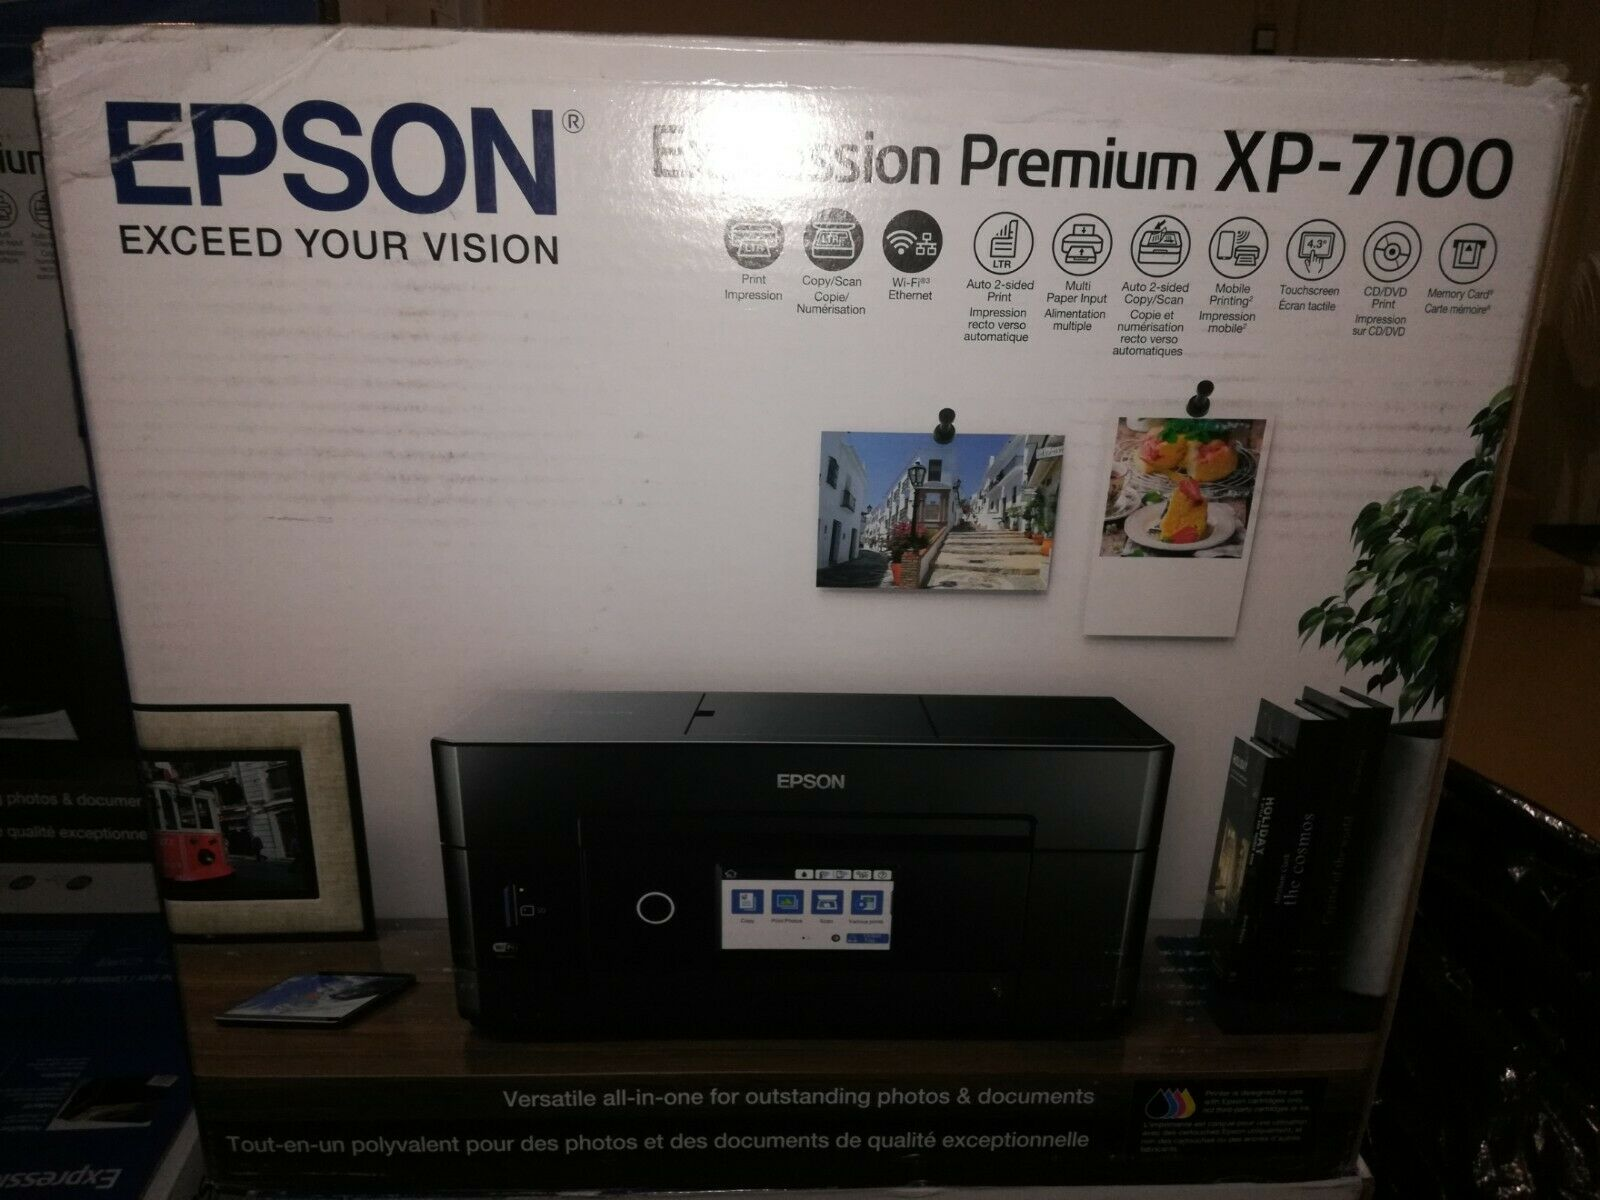 Brand New Epson Expression Premium XP-7100 all-in-one Printer. Buy it now for 184.95